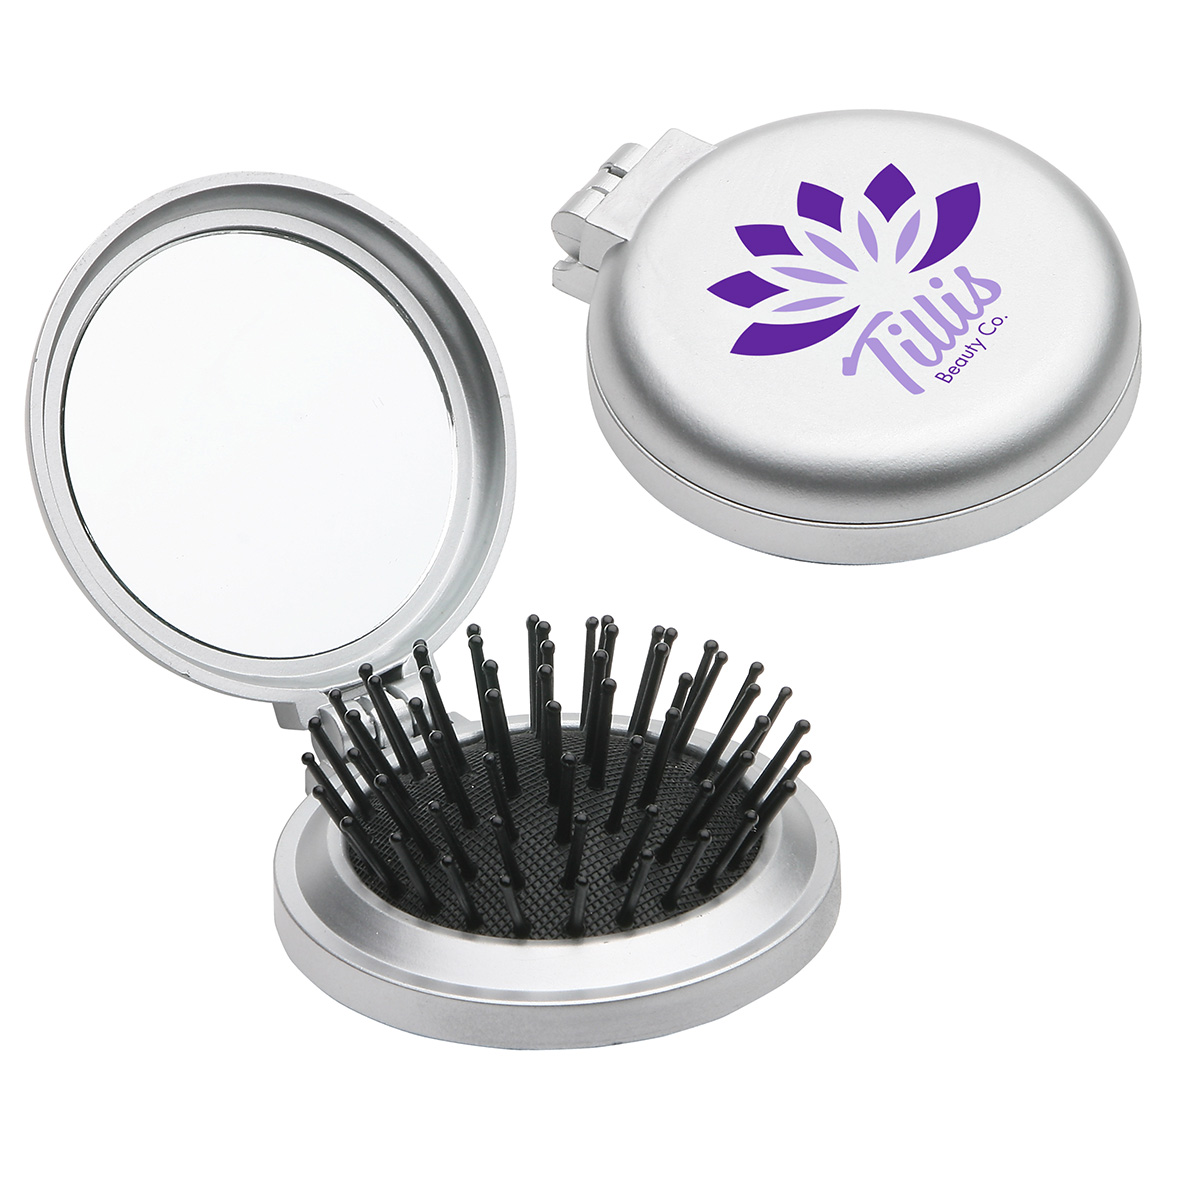 Travel Disk Brush & Mirror, WTV-TD10 - 1 Colour Imprint